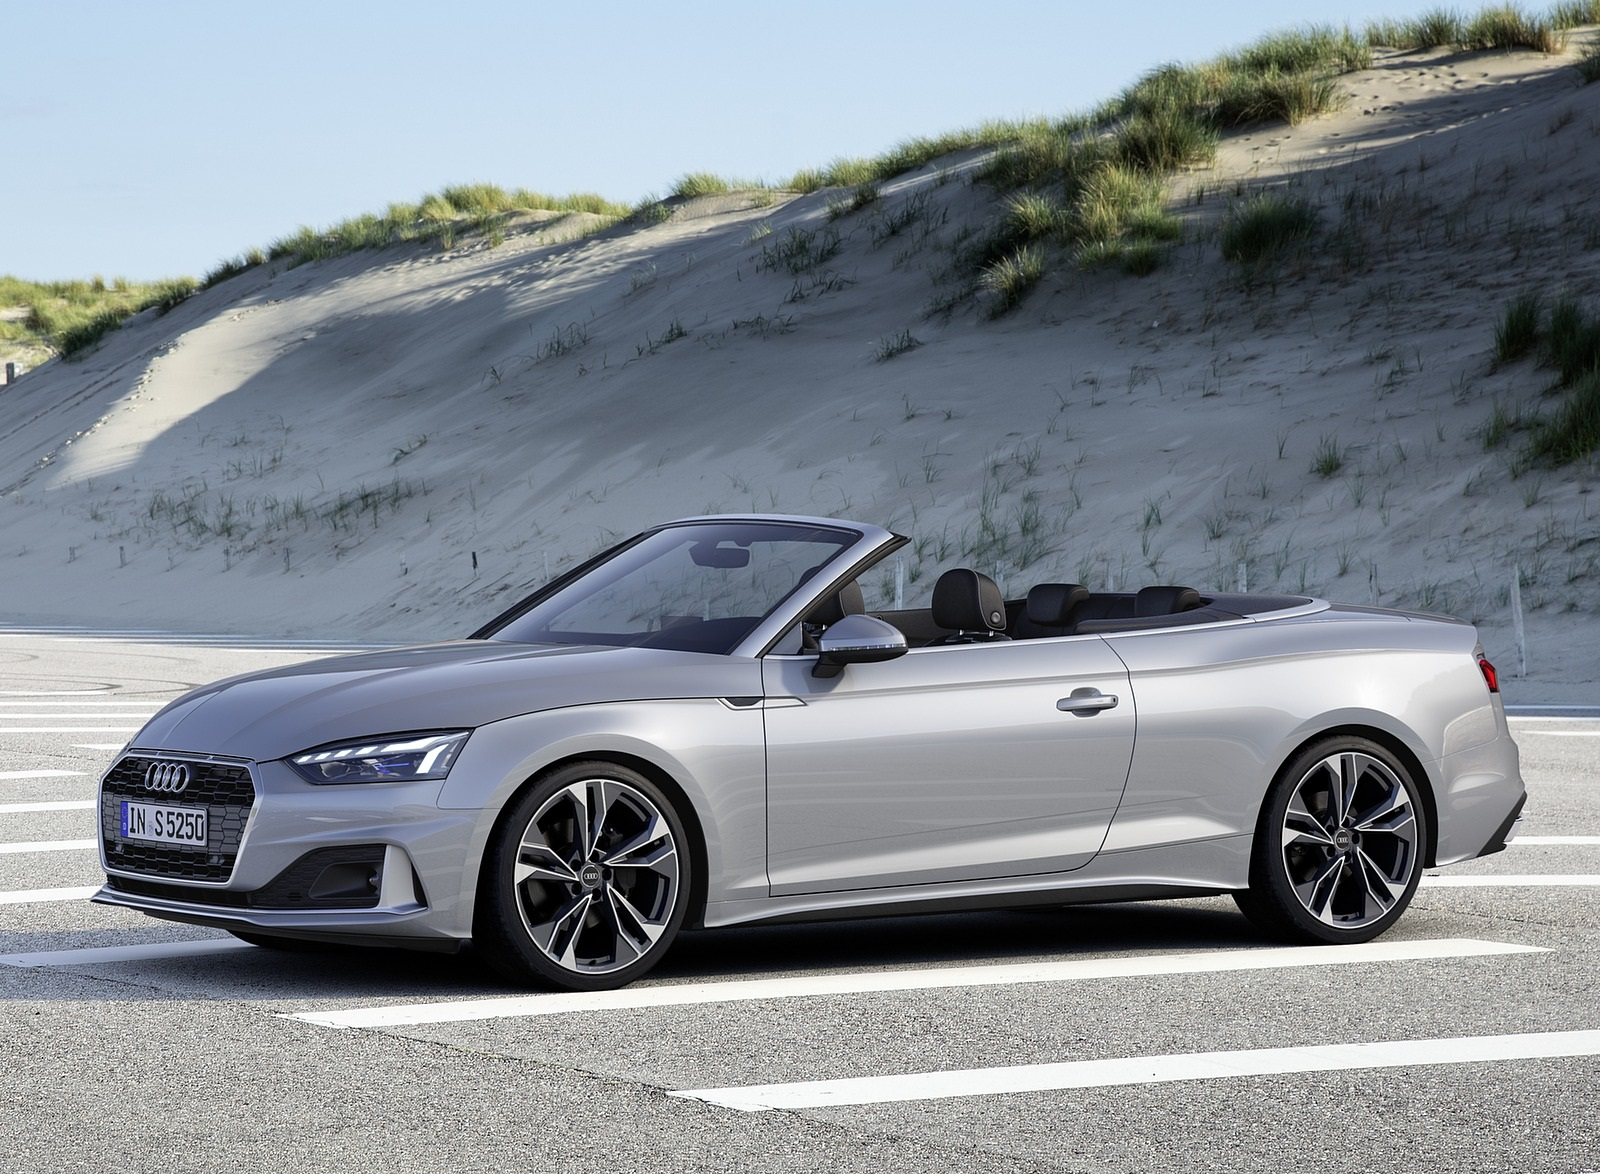 2020 Audi A5 Cabriolet (Color: Florett Silver) Front Three-Quarter Wallpapers (8)